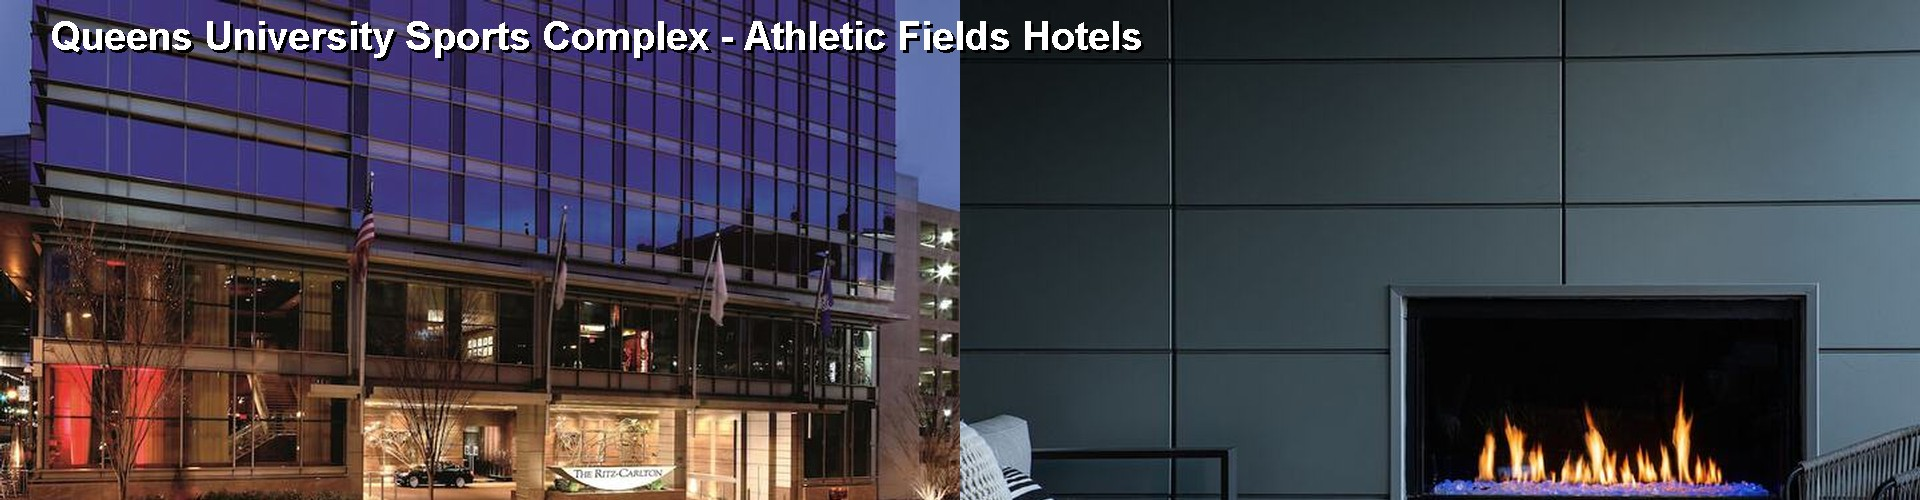 Hotels Near Queens University Sports Complex - Athletic Fields in ...